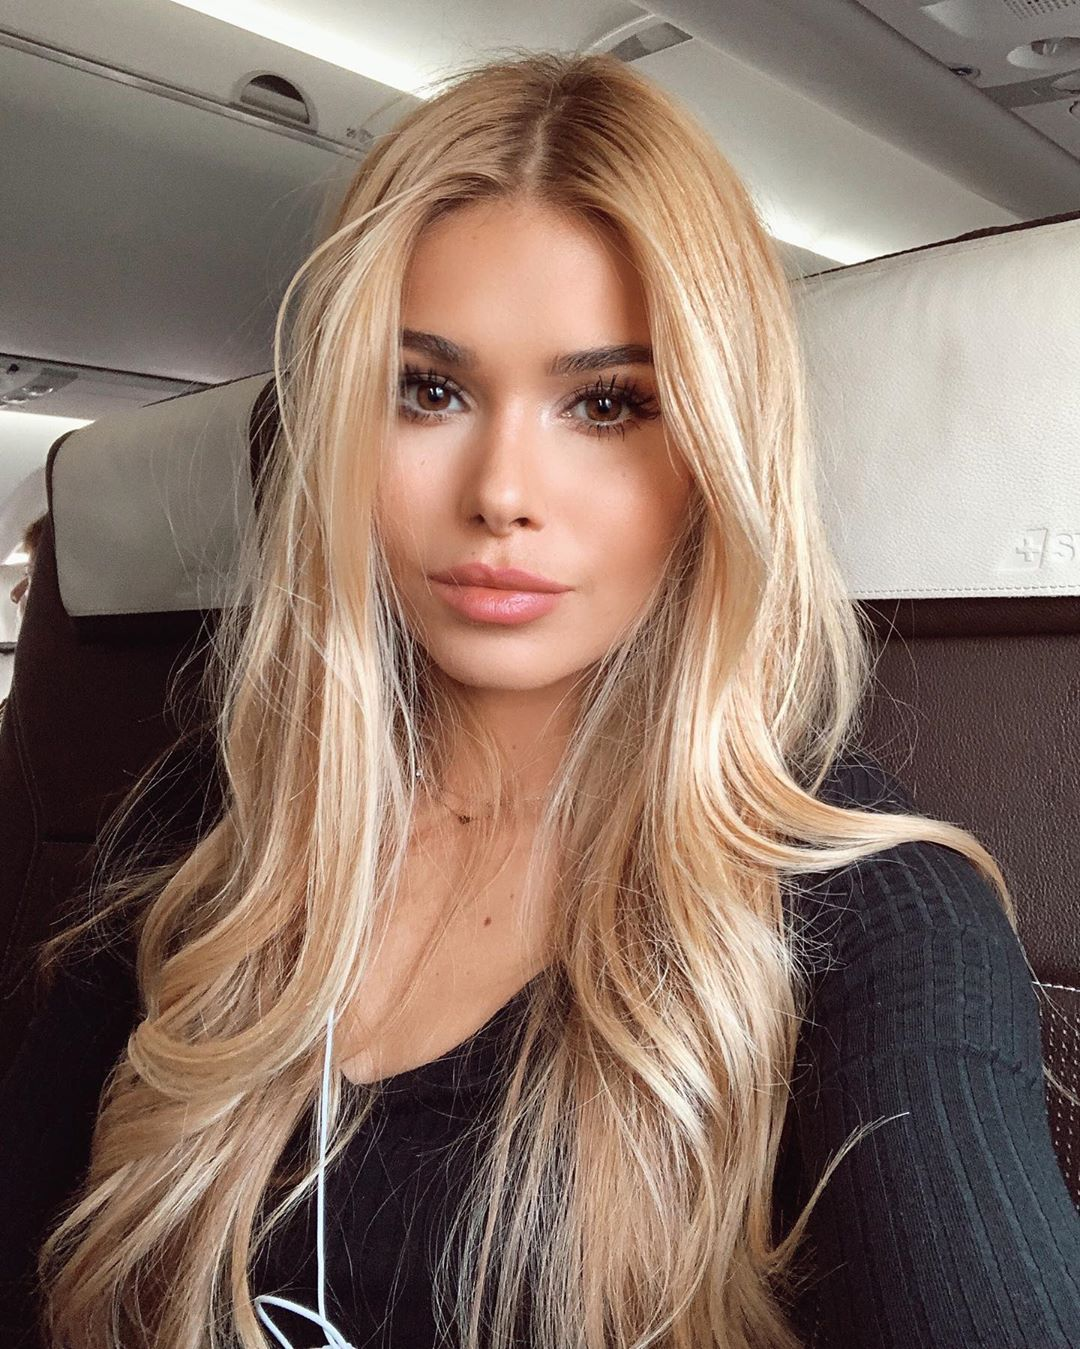 Human hair lace front wigs,100% real quality human hair wigs for caucasian -   13 wavy hair ideas